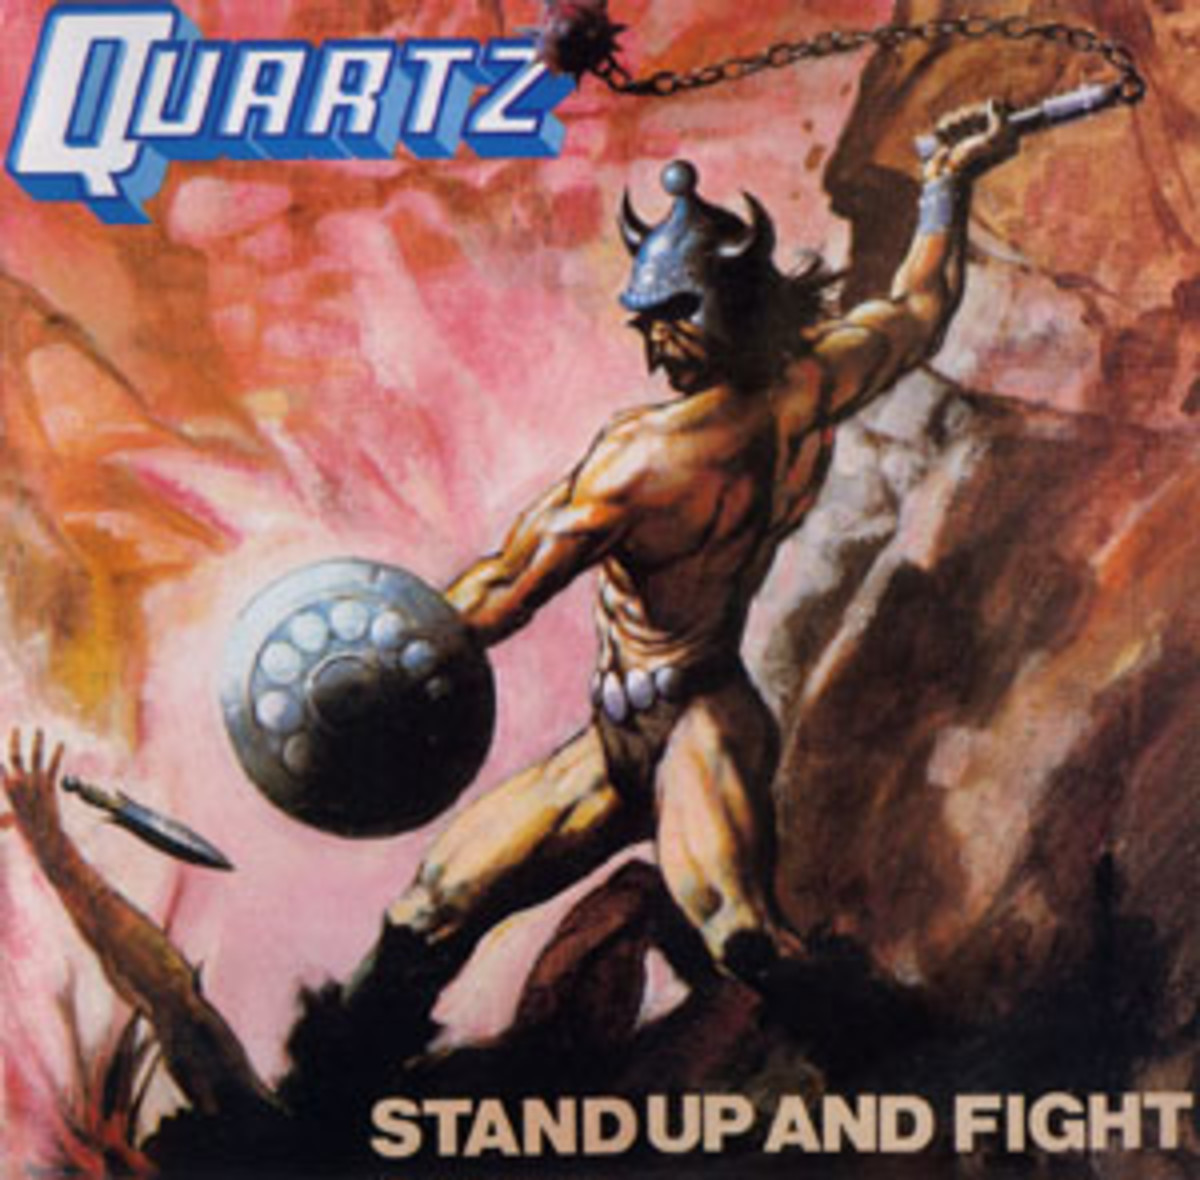 Quartz_StandUpAndFight